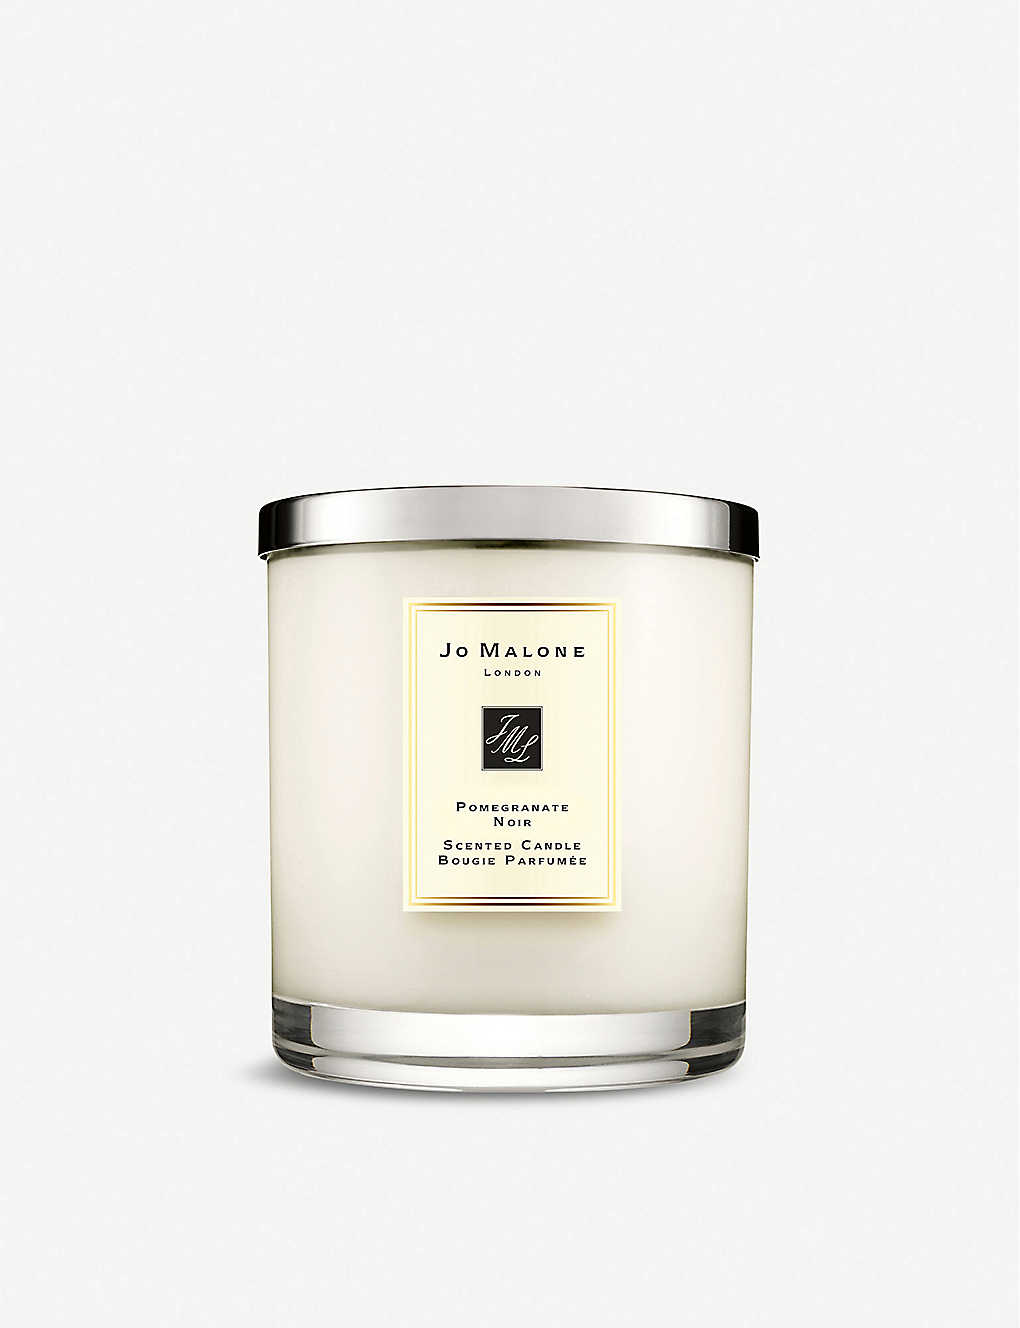 JO MALONE LONDON: Pomegranate Noir luxury candle 2.5kg